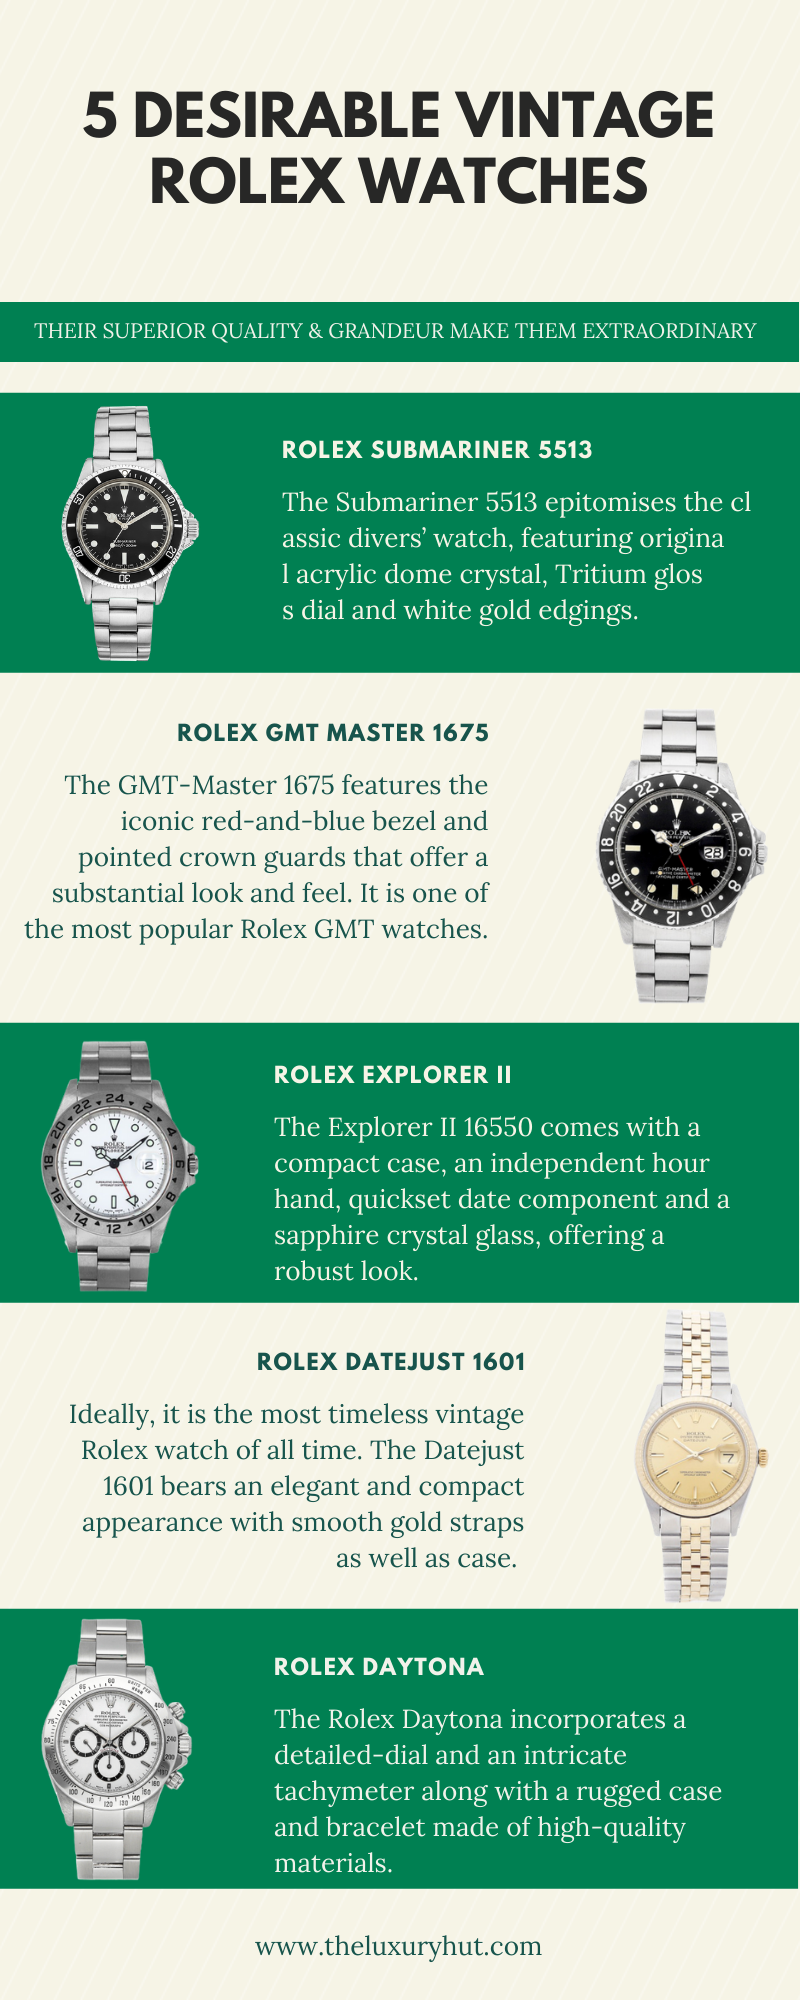 5 Desirable Vintage Rolex Watches